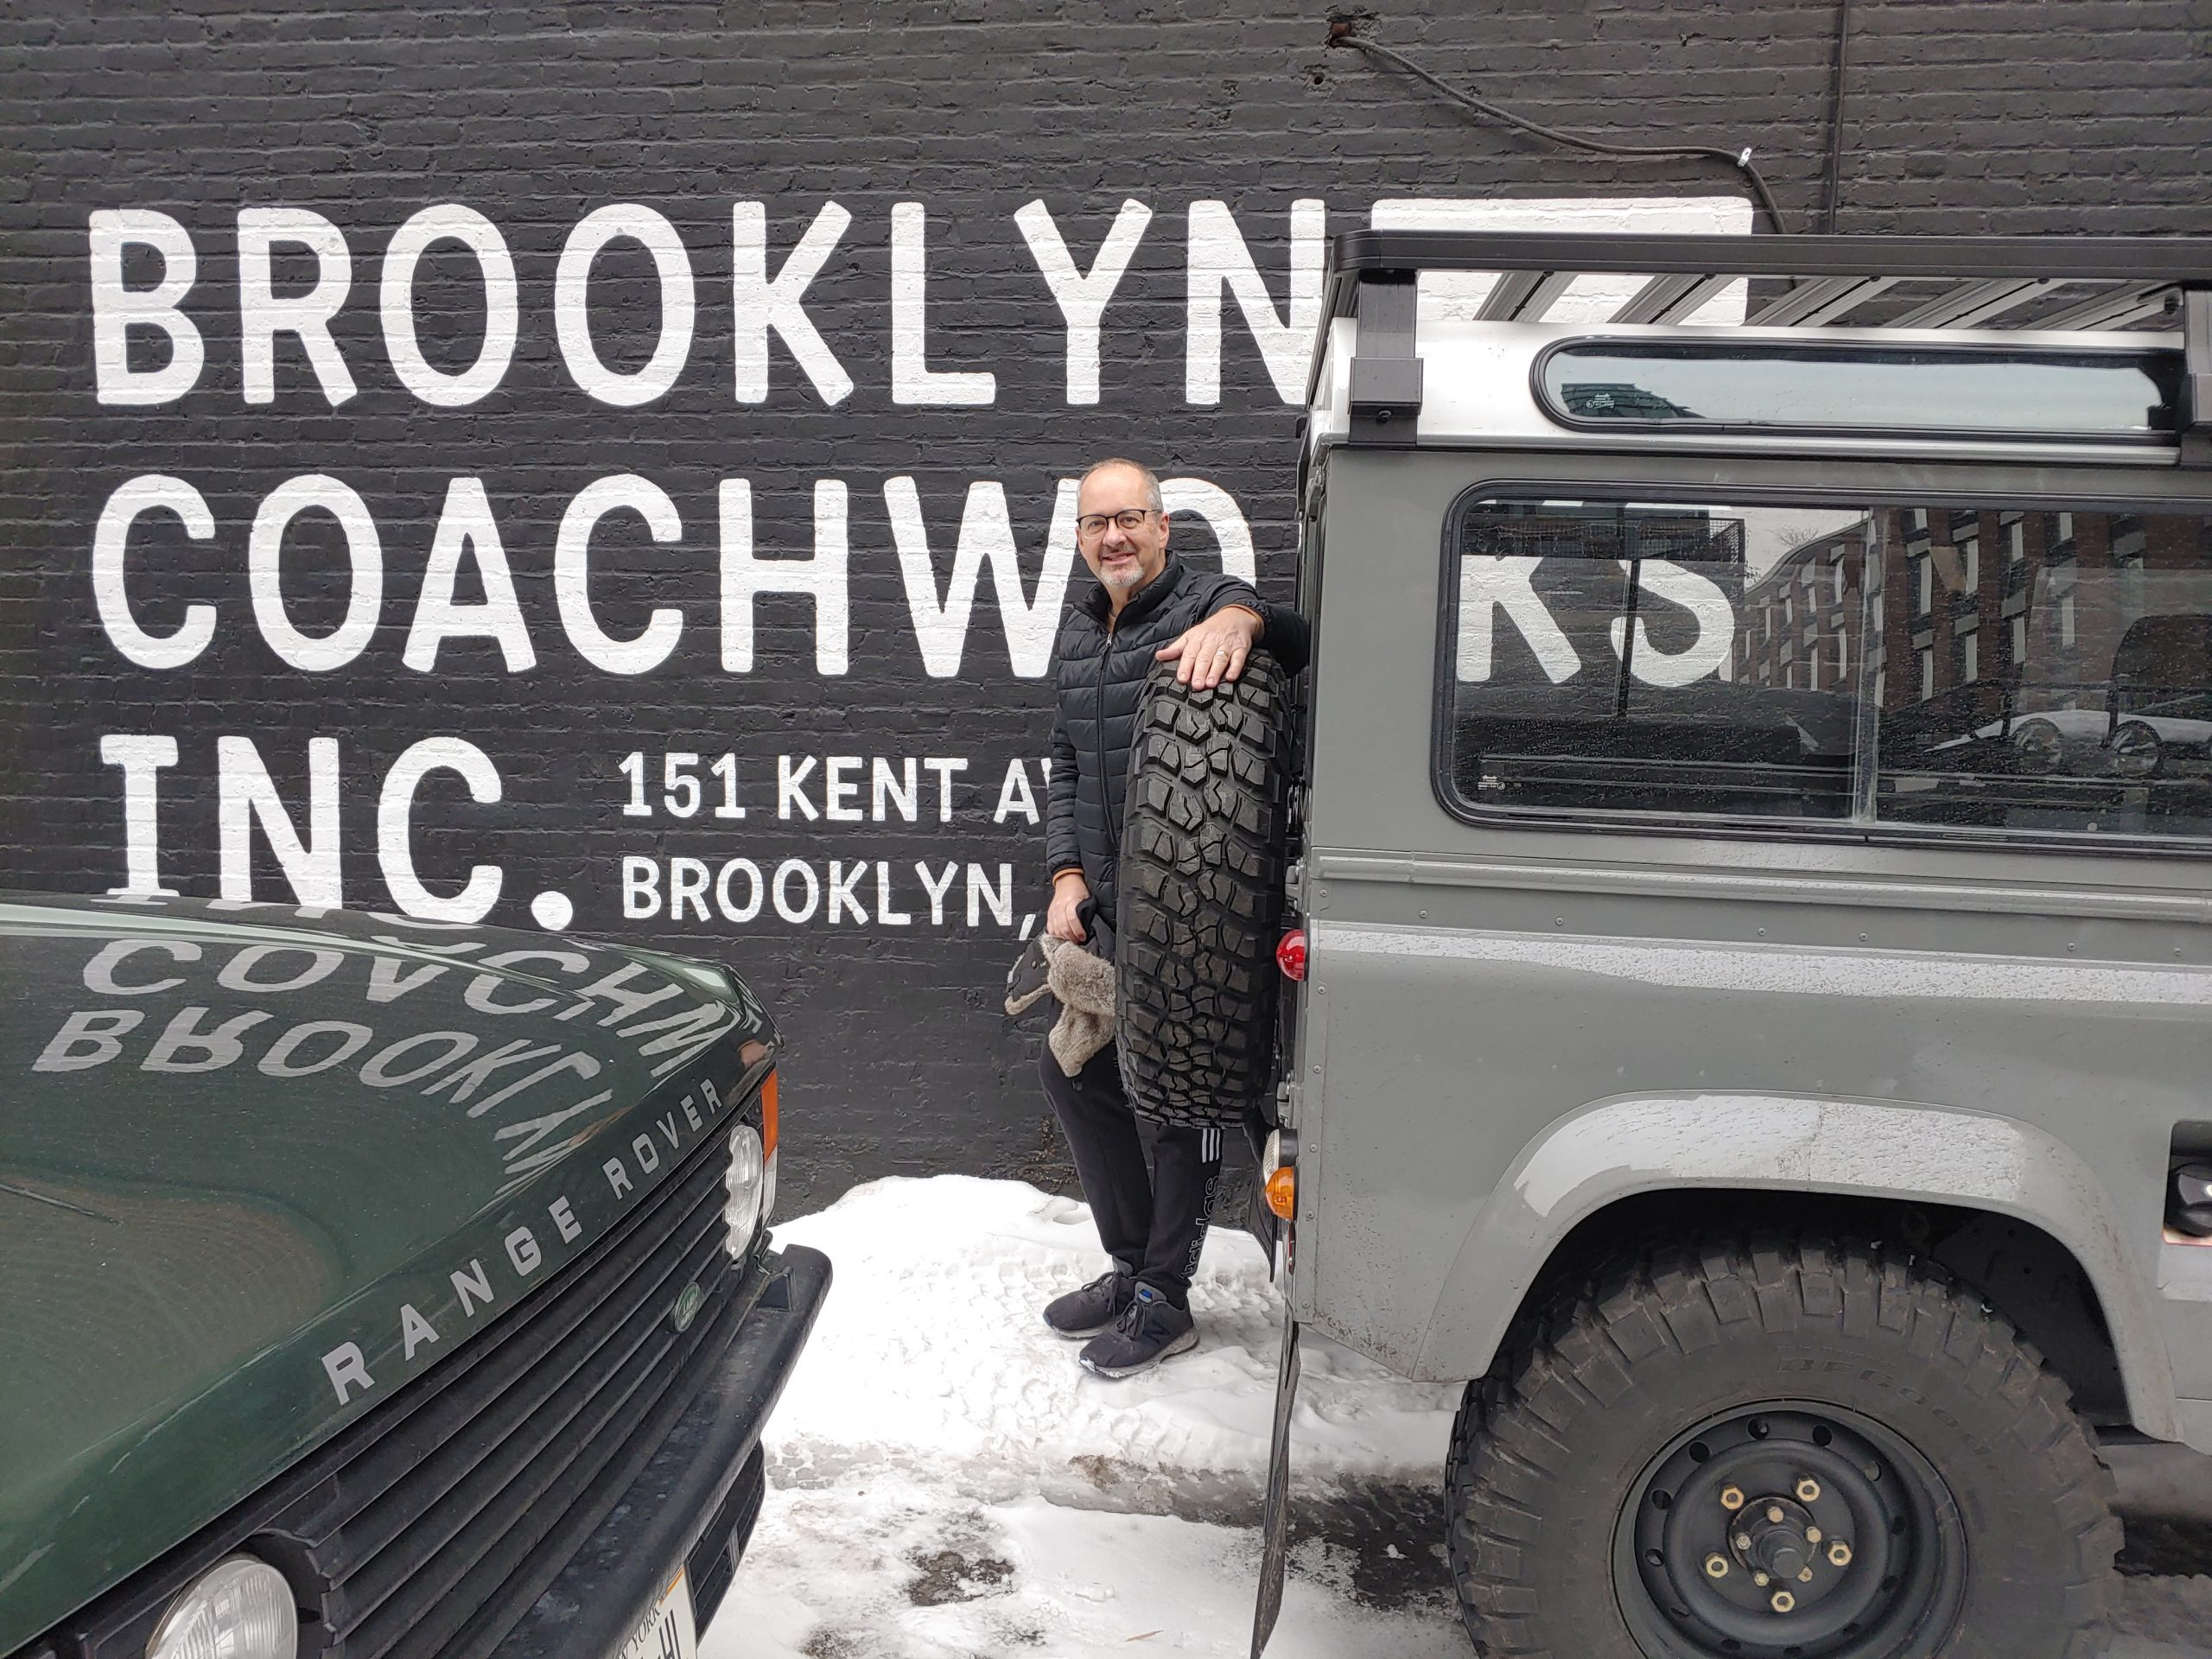 Brooklyn Coachworks